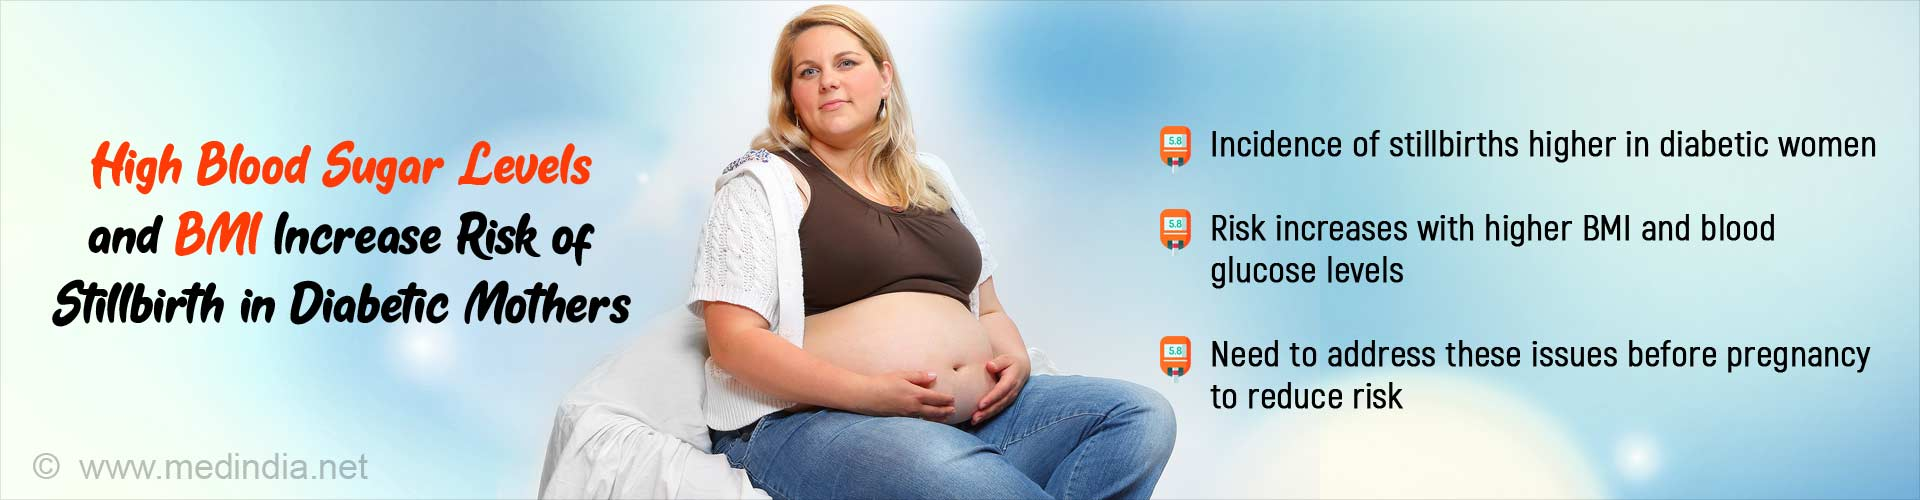 Obese, Diabetic Pregnant Women More Likely to Suffer Stillbirths